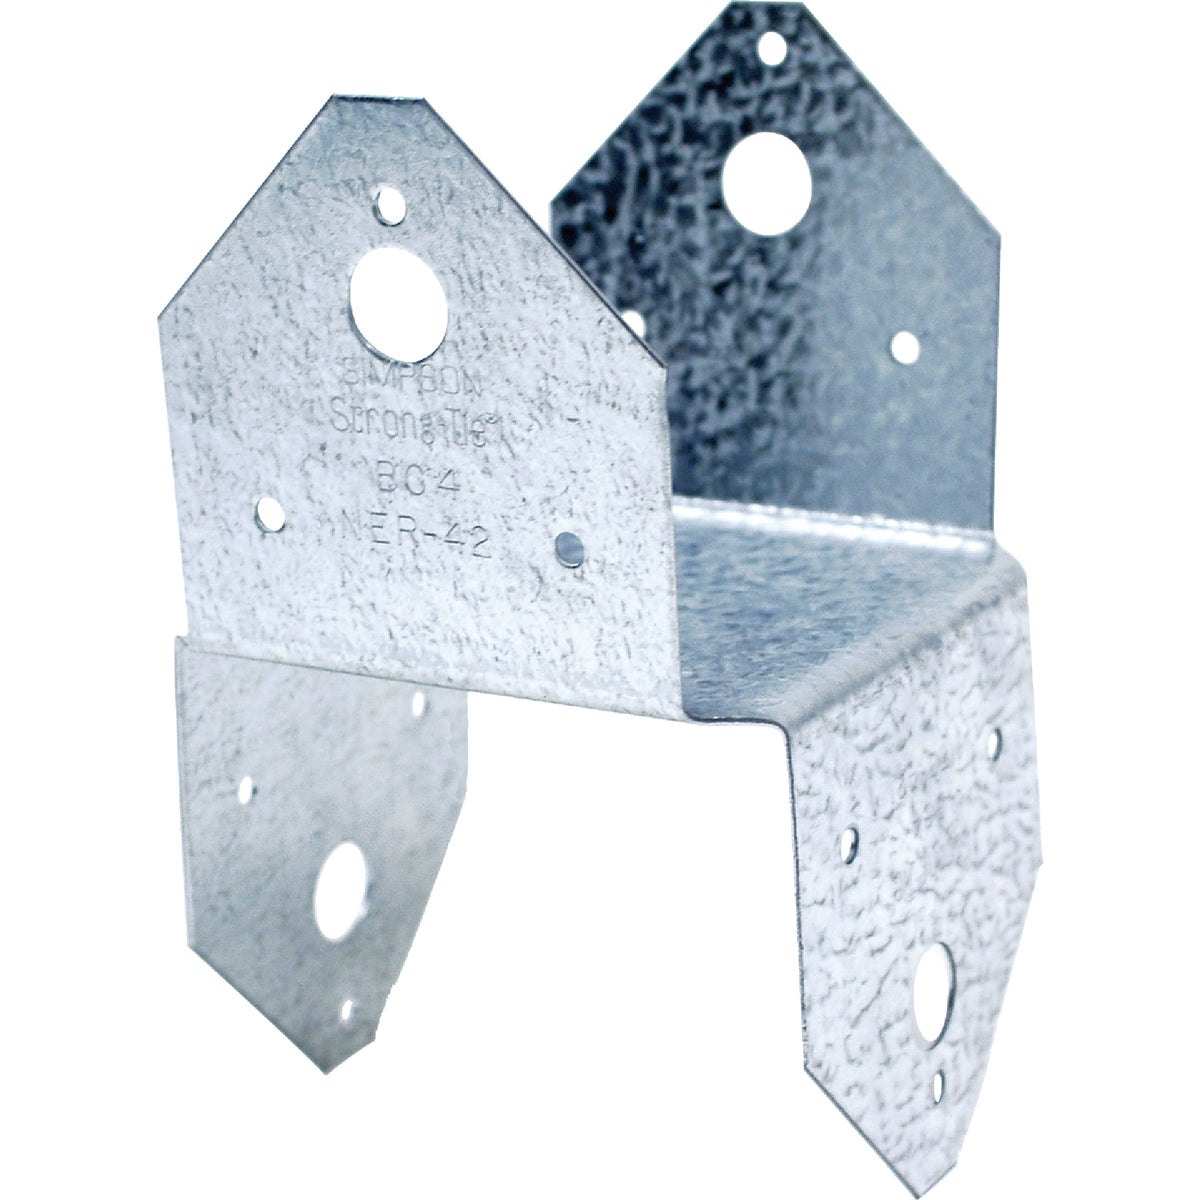 4X4 POST CAP BASE - BC4 by Simpson Strong Tie